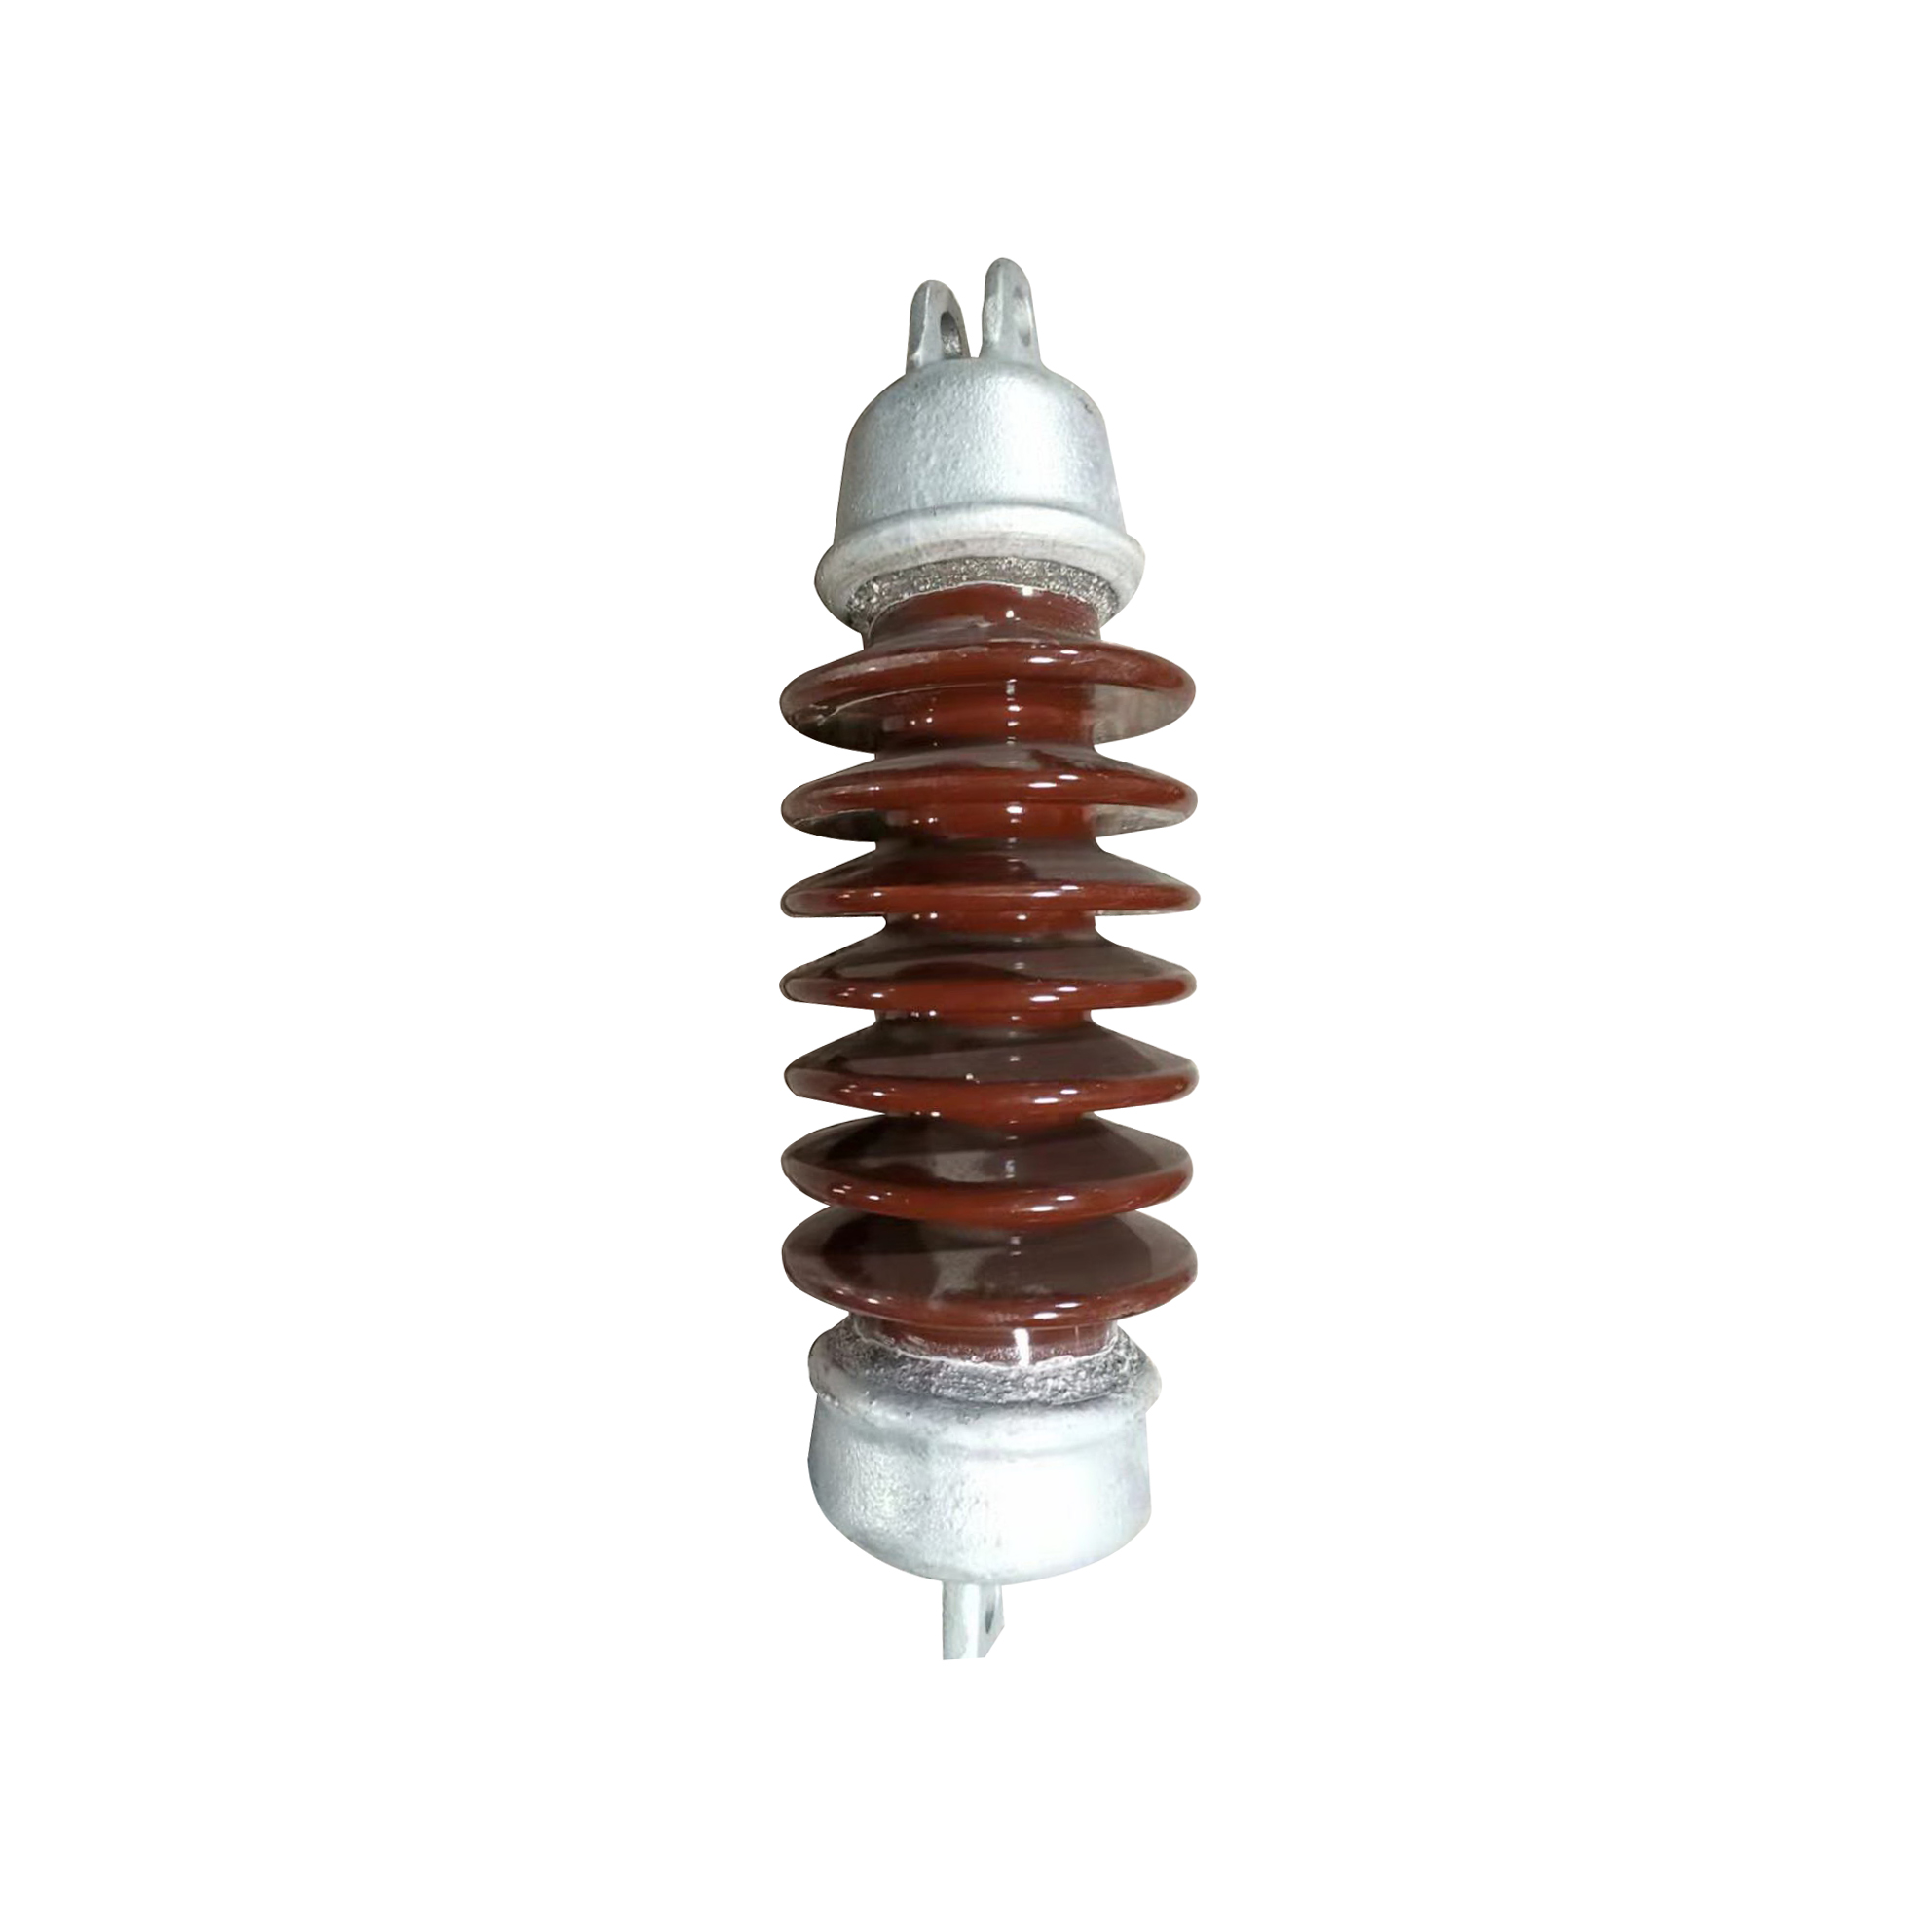 11KV High Voltage Electrical Porcelain Post Tension Insulator